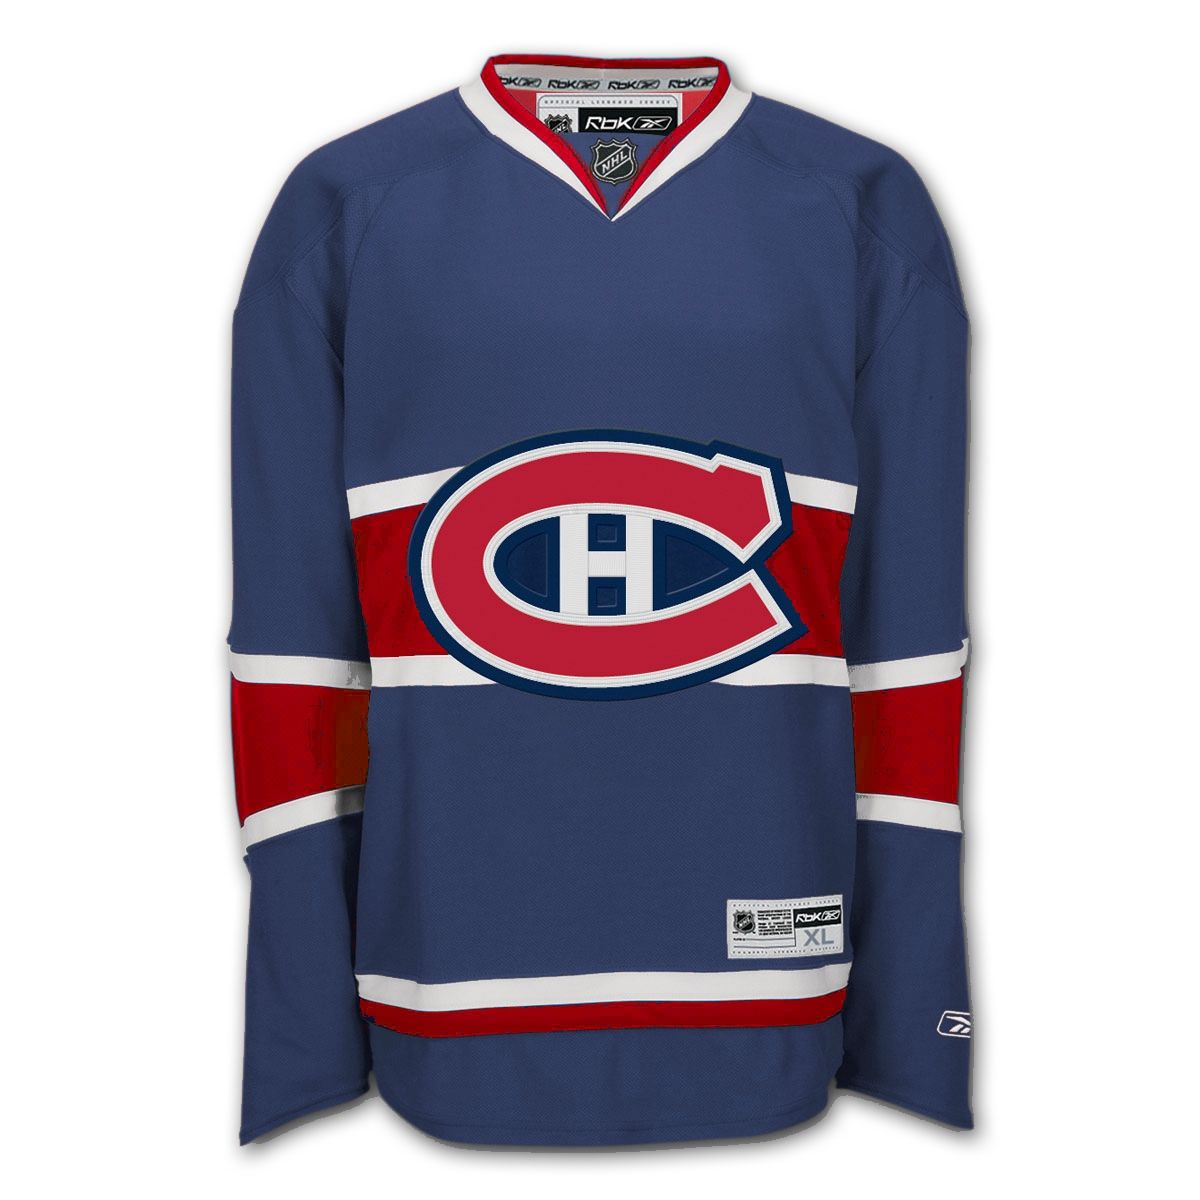 a81ba7811 montreal canadiens jersey history - Google Search